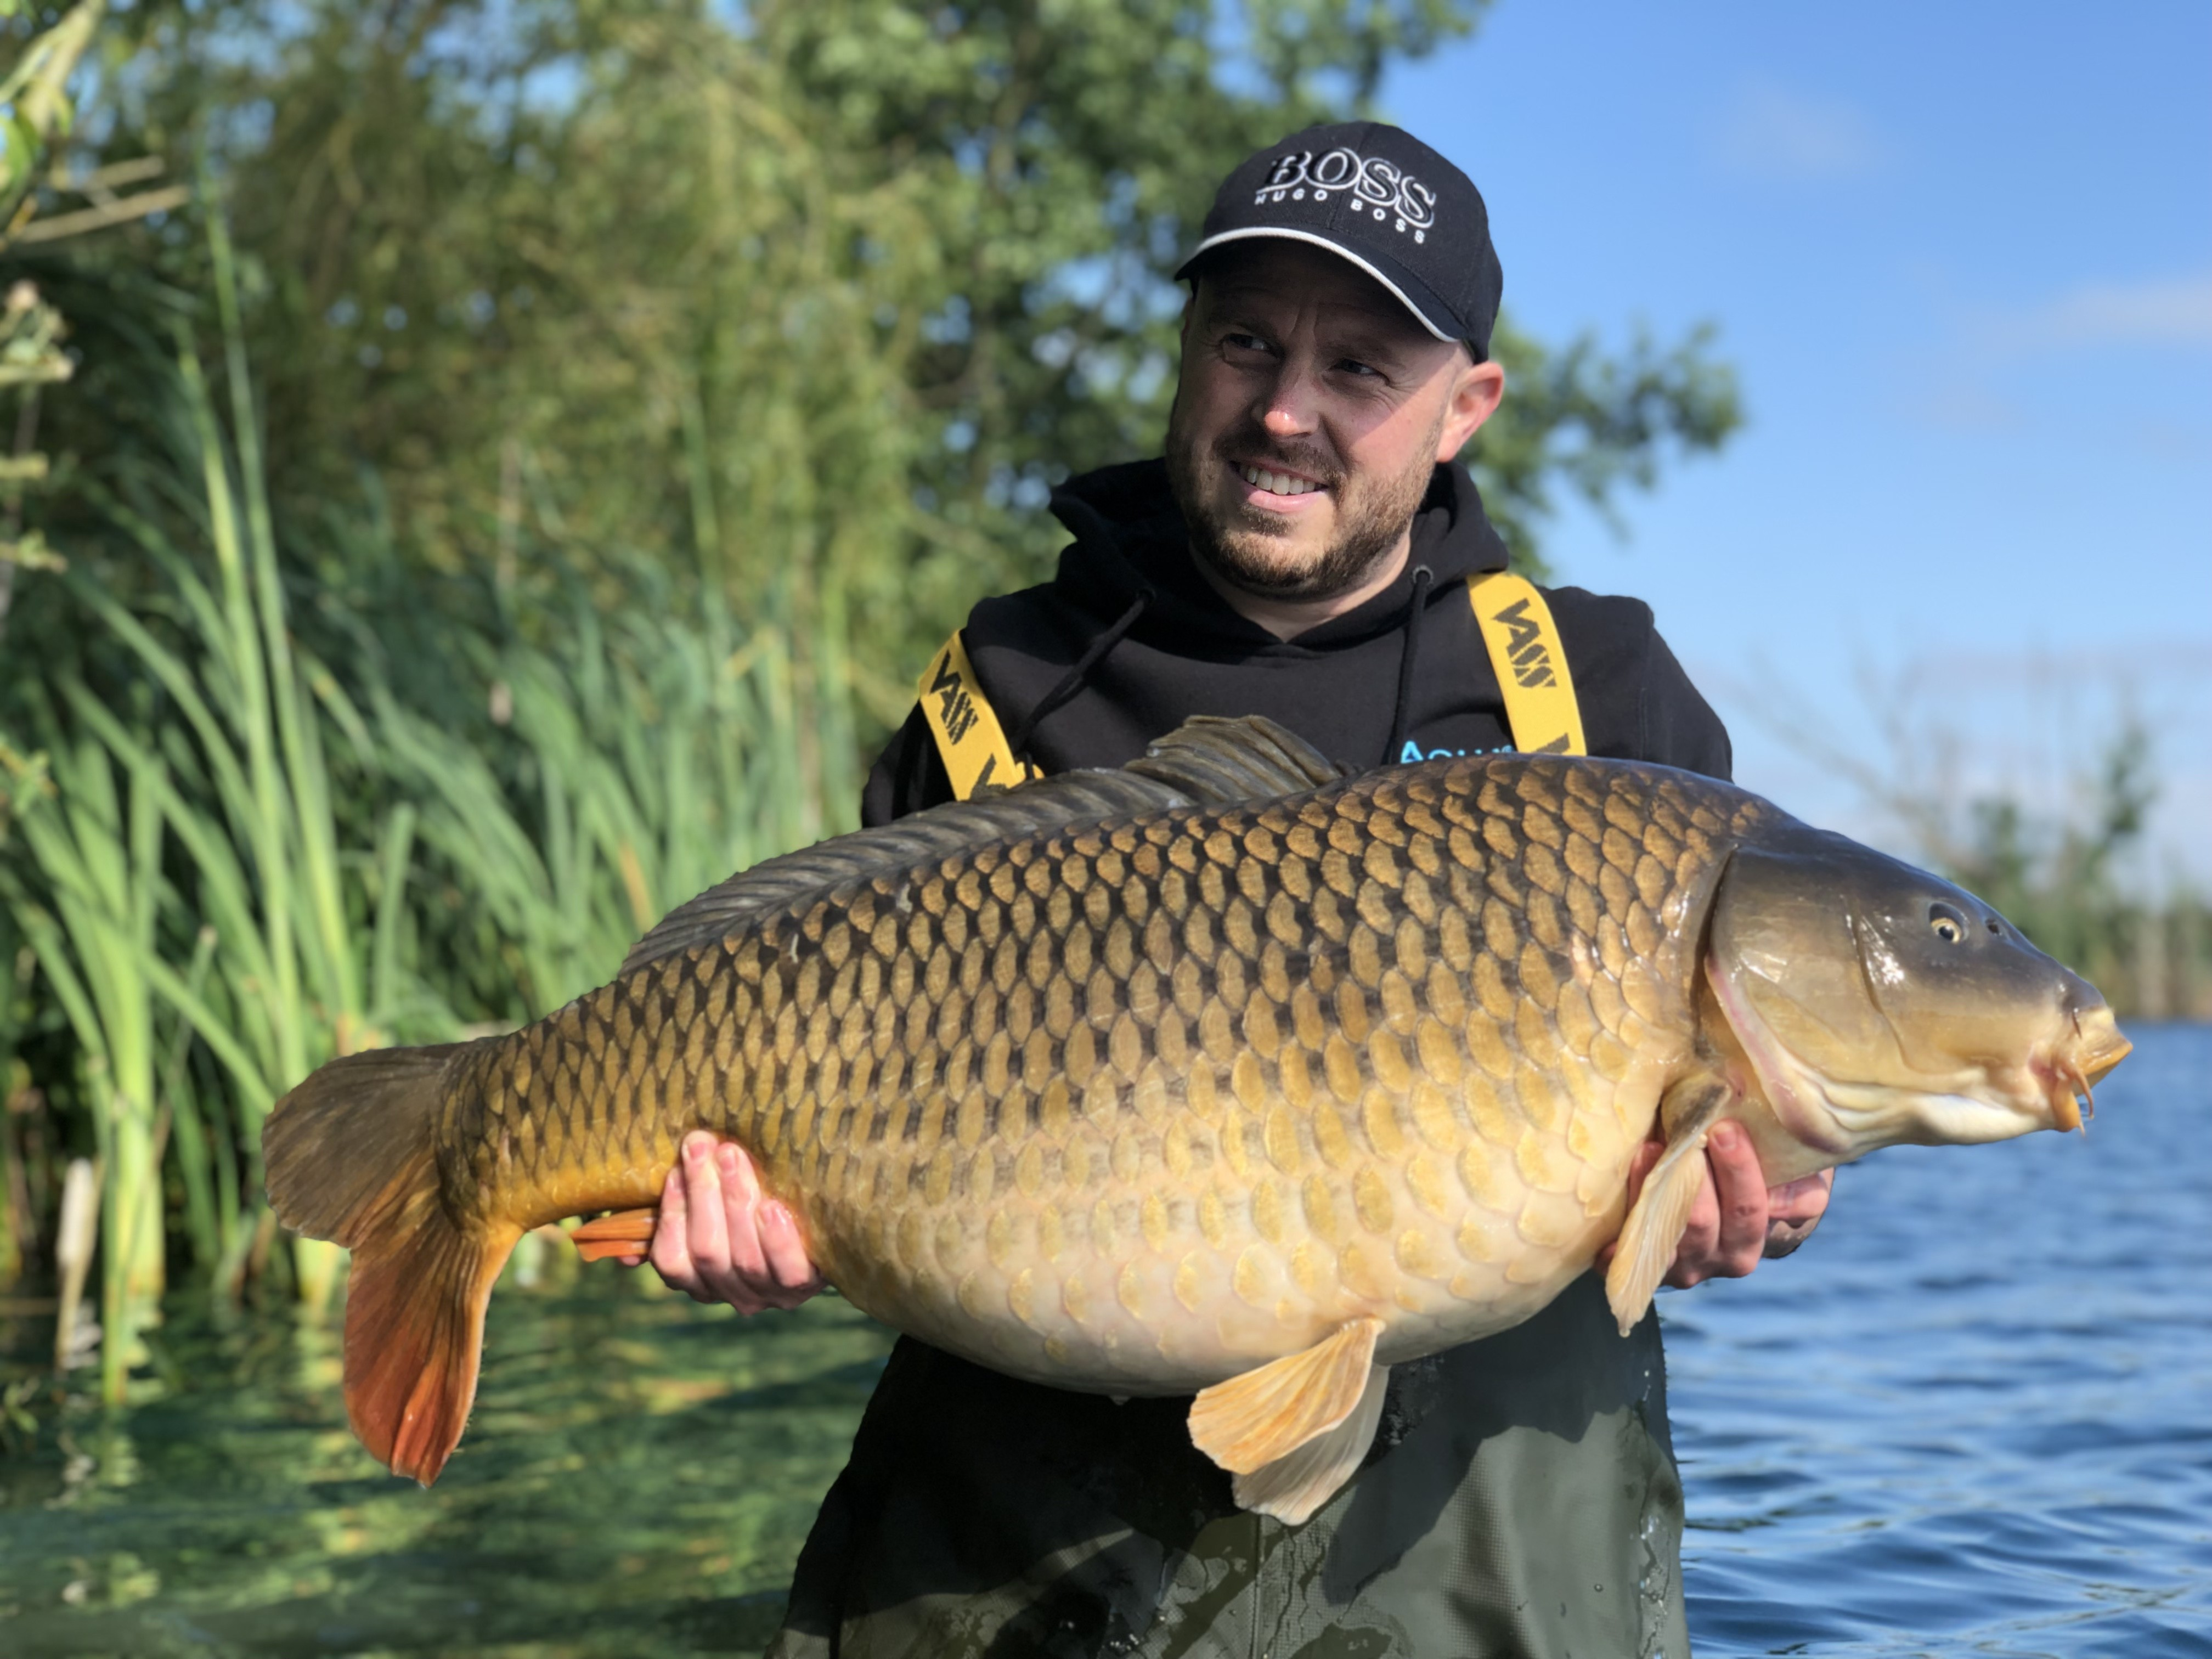 40lb 12oz 'Knowlesy' caught on